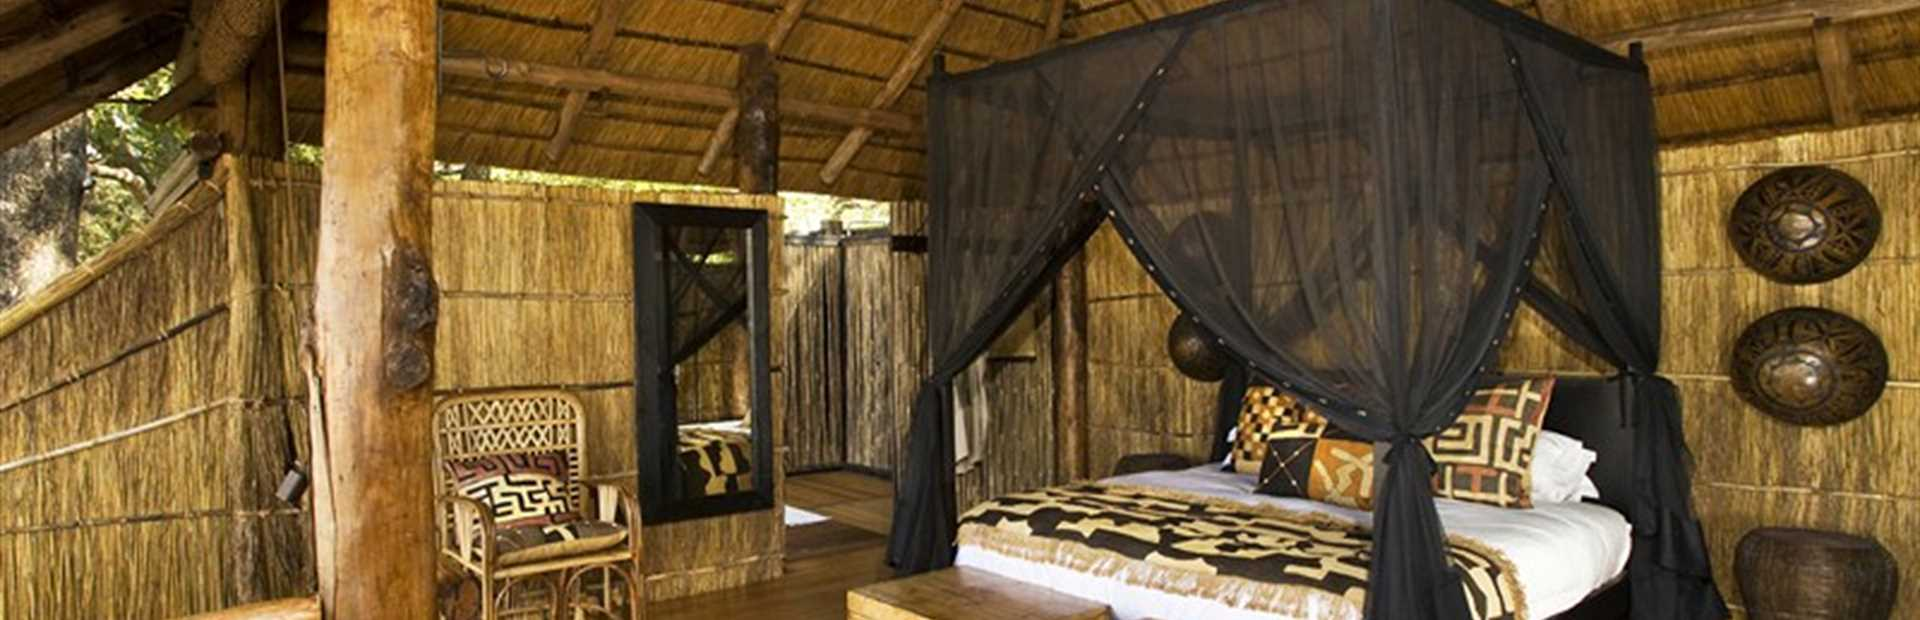 Chamilandu Bush Camp